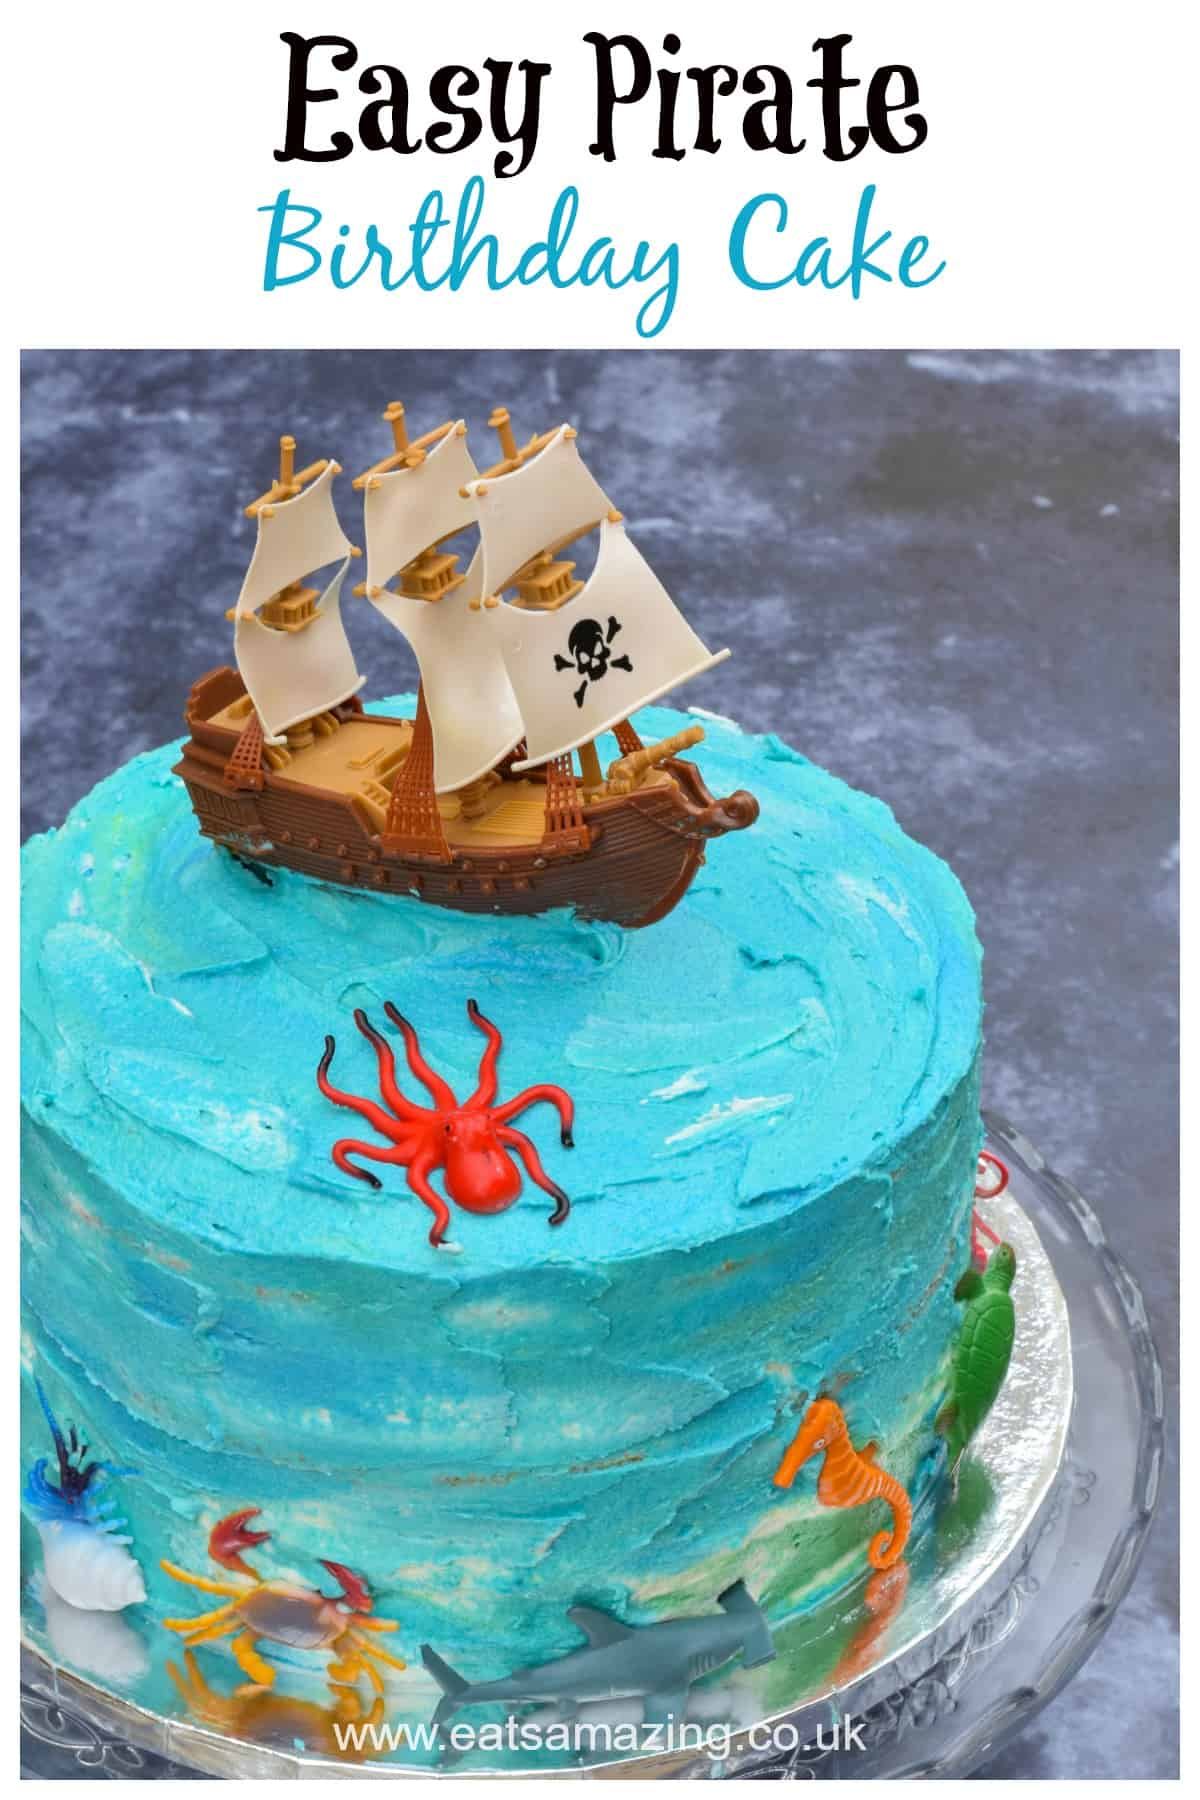 How to make an easy Pirate themed birthday cake for kids - with full recipe and decorating instructions #EatsAmazing #Cake #CakeDecorating #KidsCake #BirthdayCake #Pirates #PartyFood #KidsParty #Buttercream